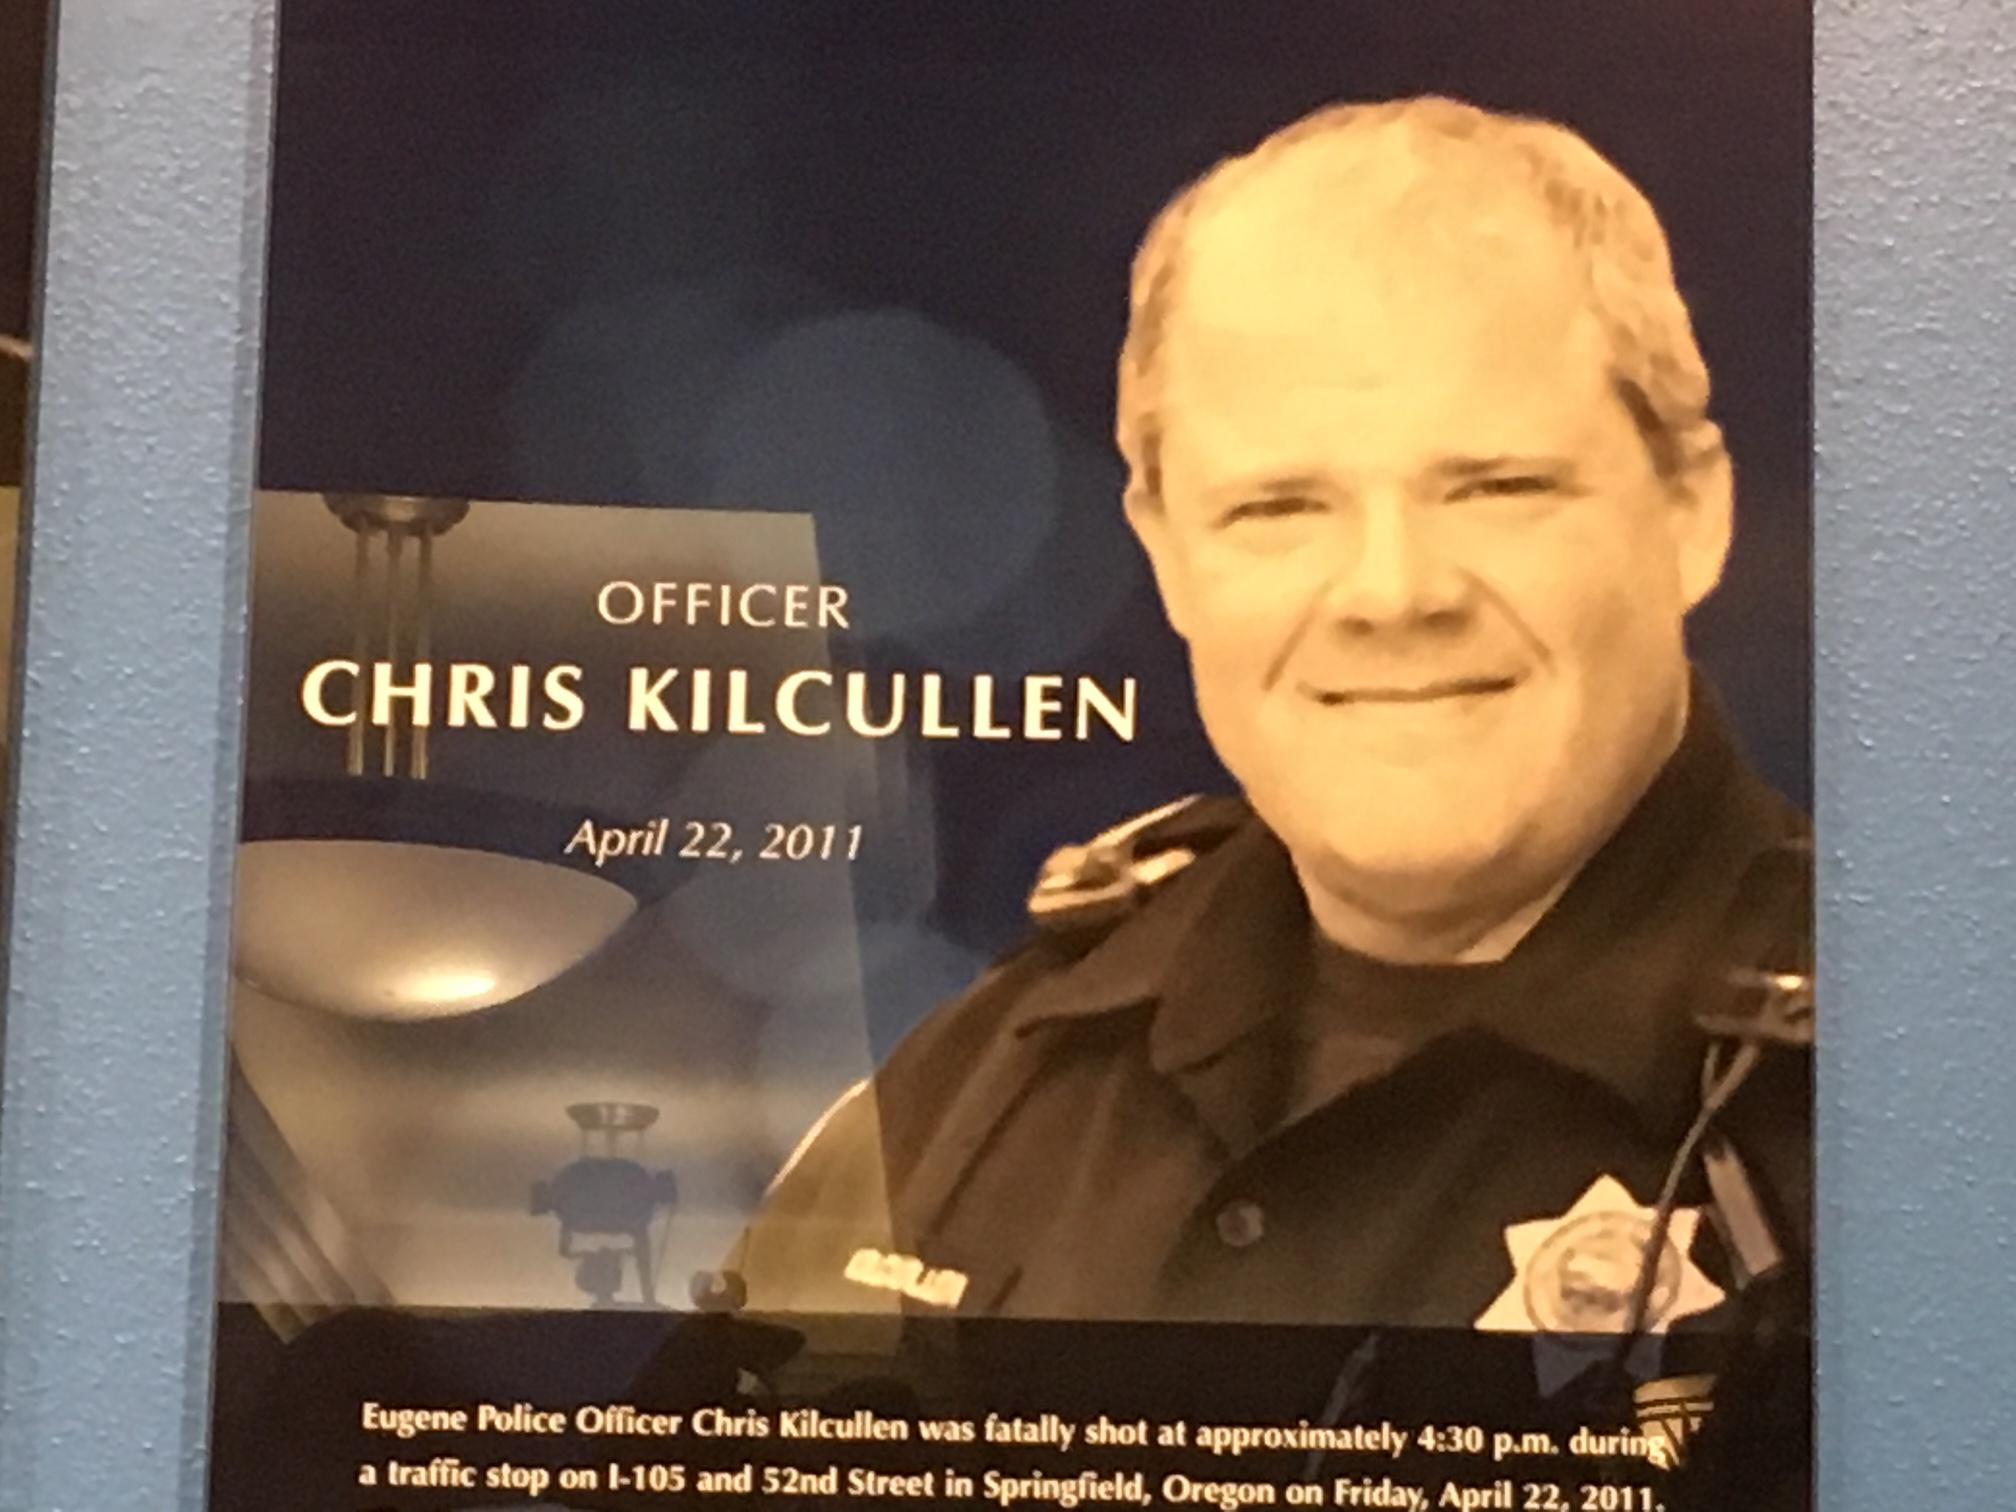 Eugene Police unveiled a memorial wall honoring Officer Chris Kilcullen (2011), Officer Jesse Jennings Jackson (1934) and Officer Oscar Duley (1930).